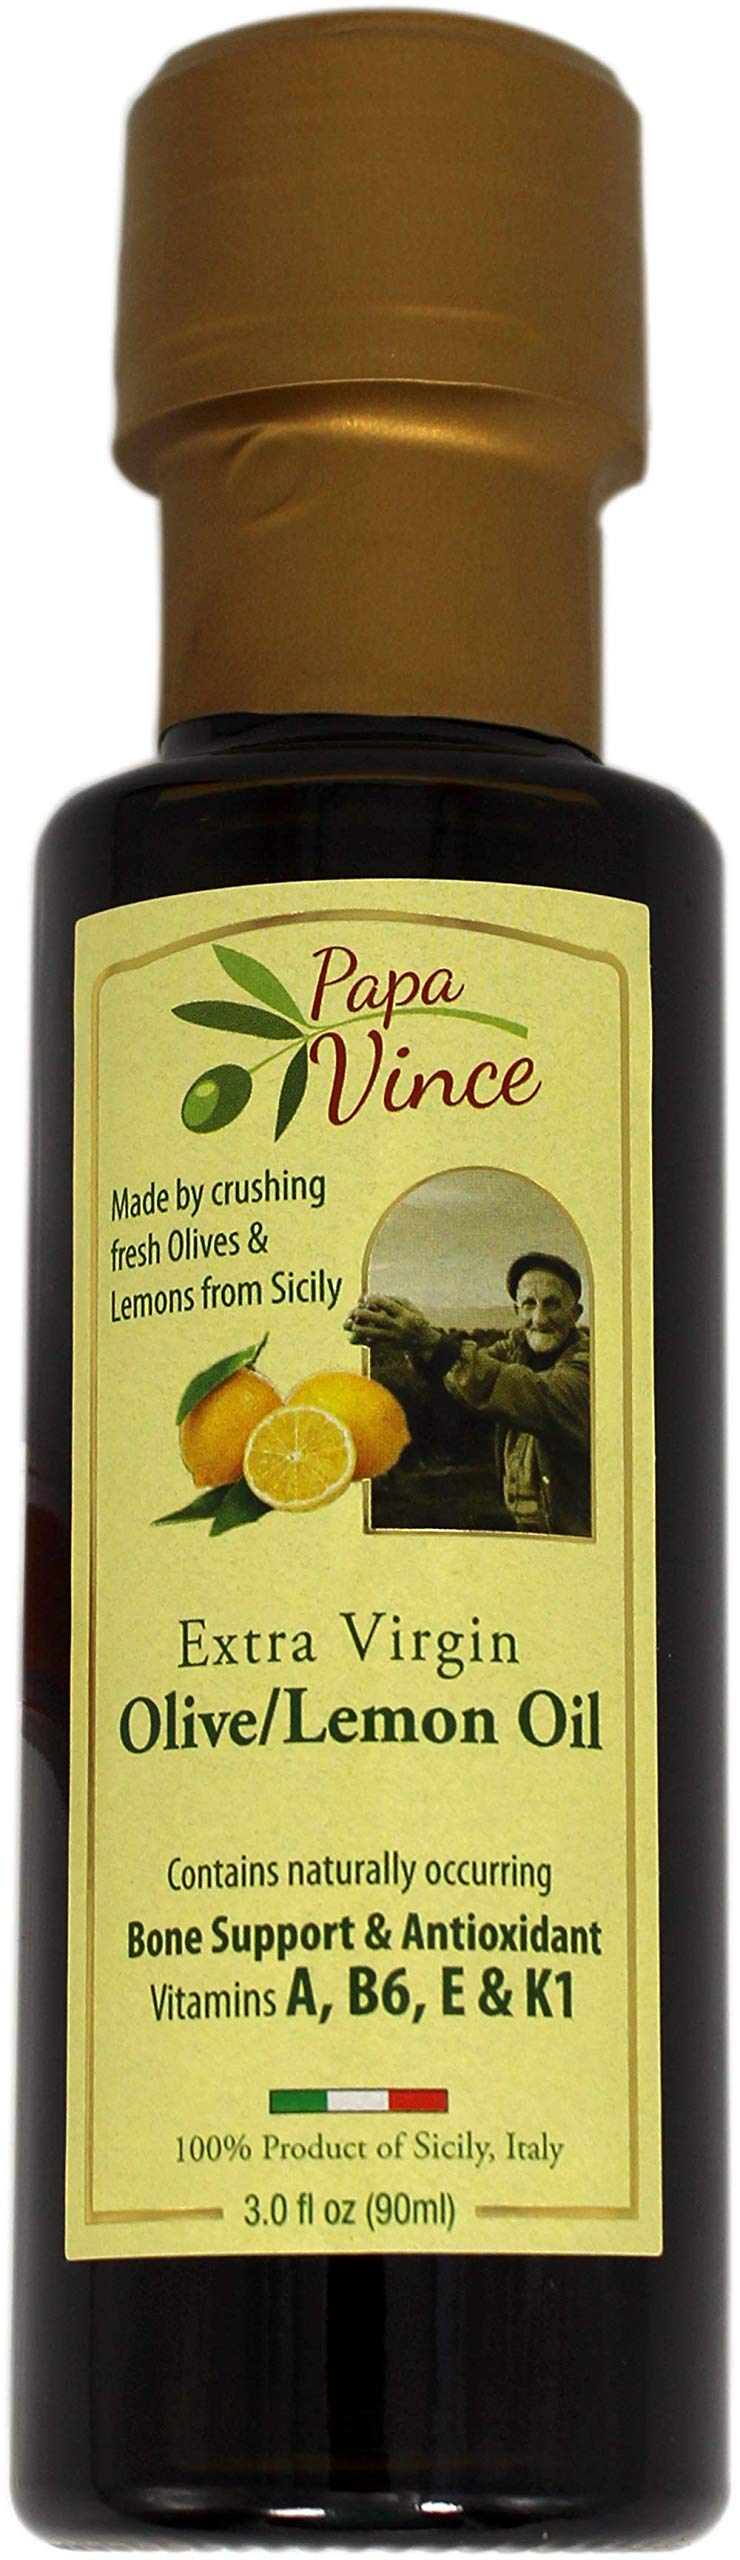 Papa Vince Lemon Olive Oil Extra: Virgin Single Estate from our family in Sicily, First Cold Pressed, Italy, Unblended, Unfiltered, Unrefined, Robust, Rich in Antioxidant 3 fl oz